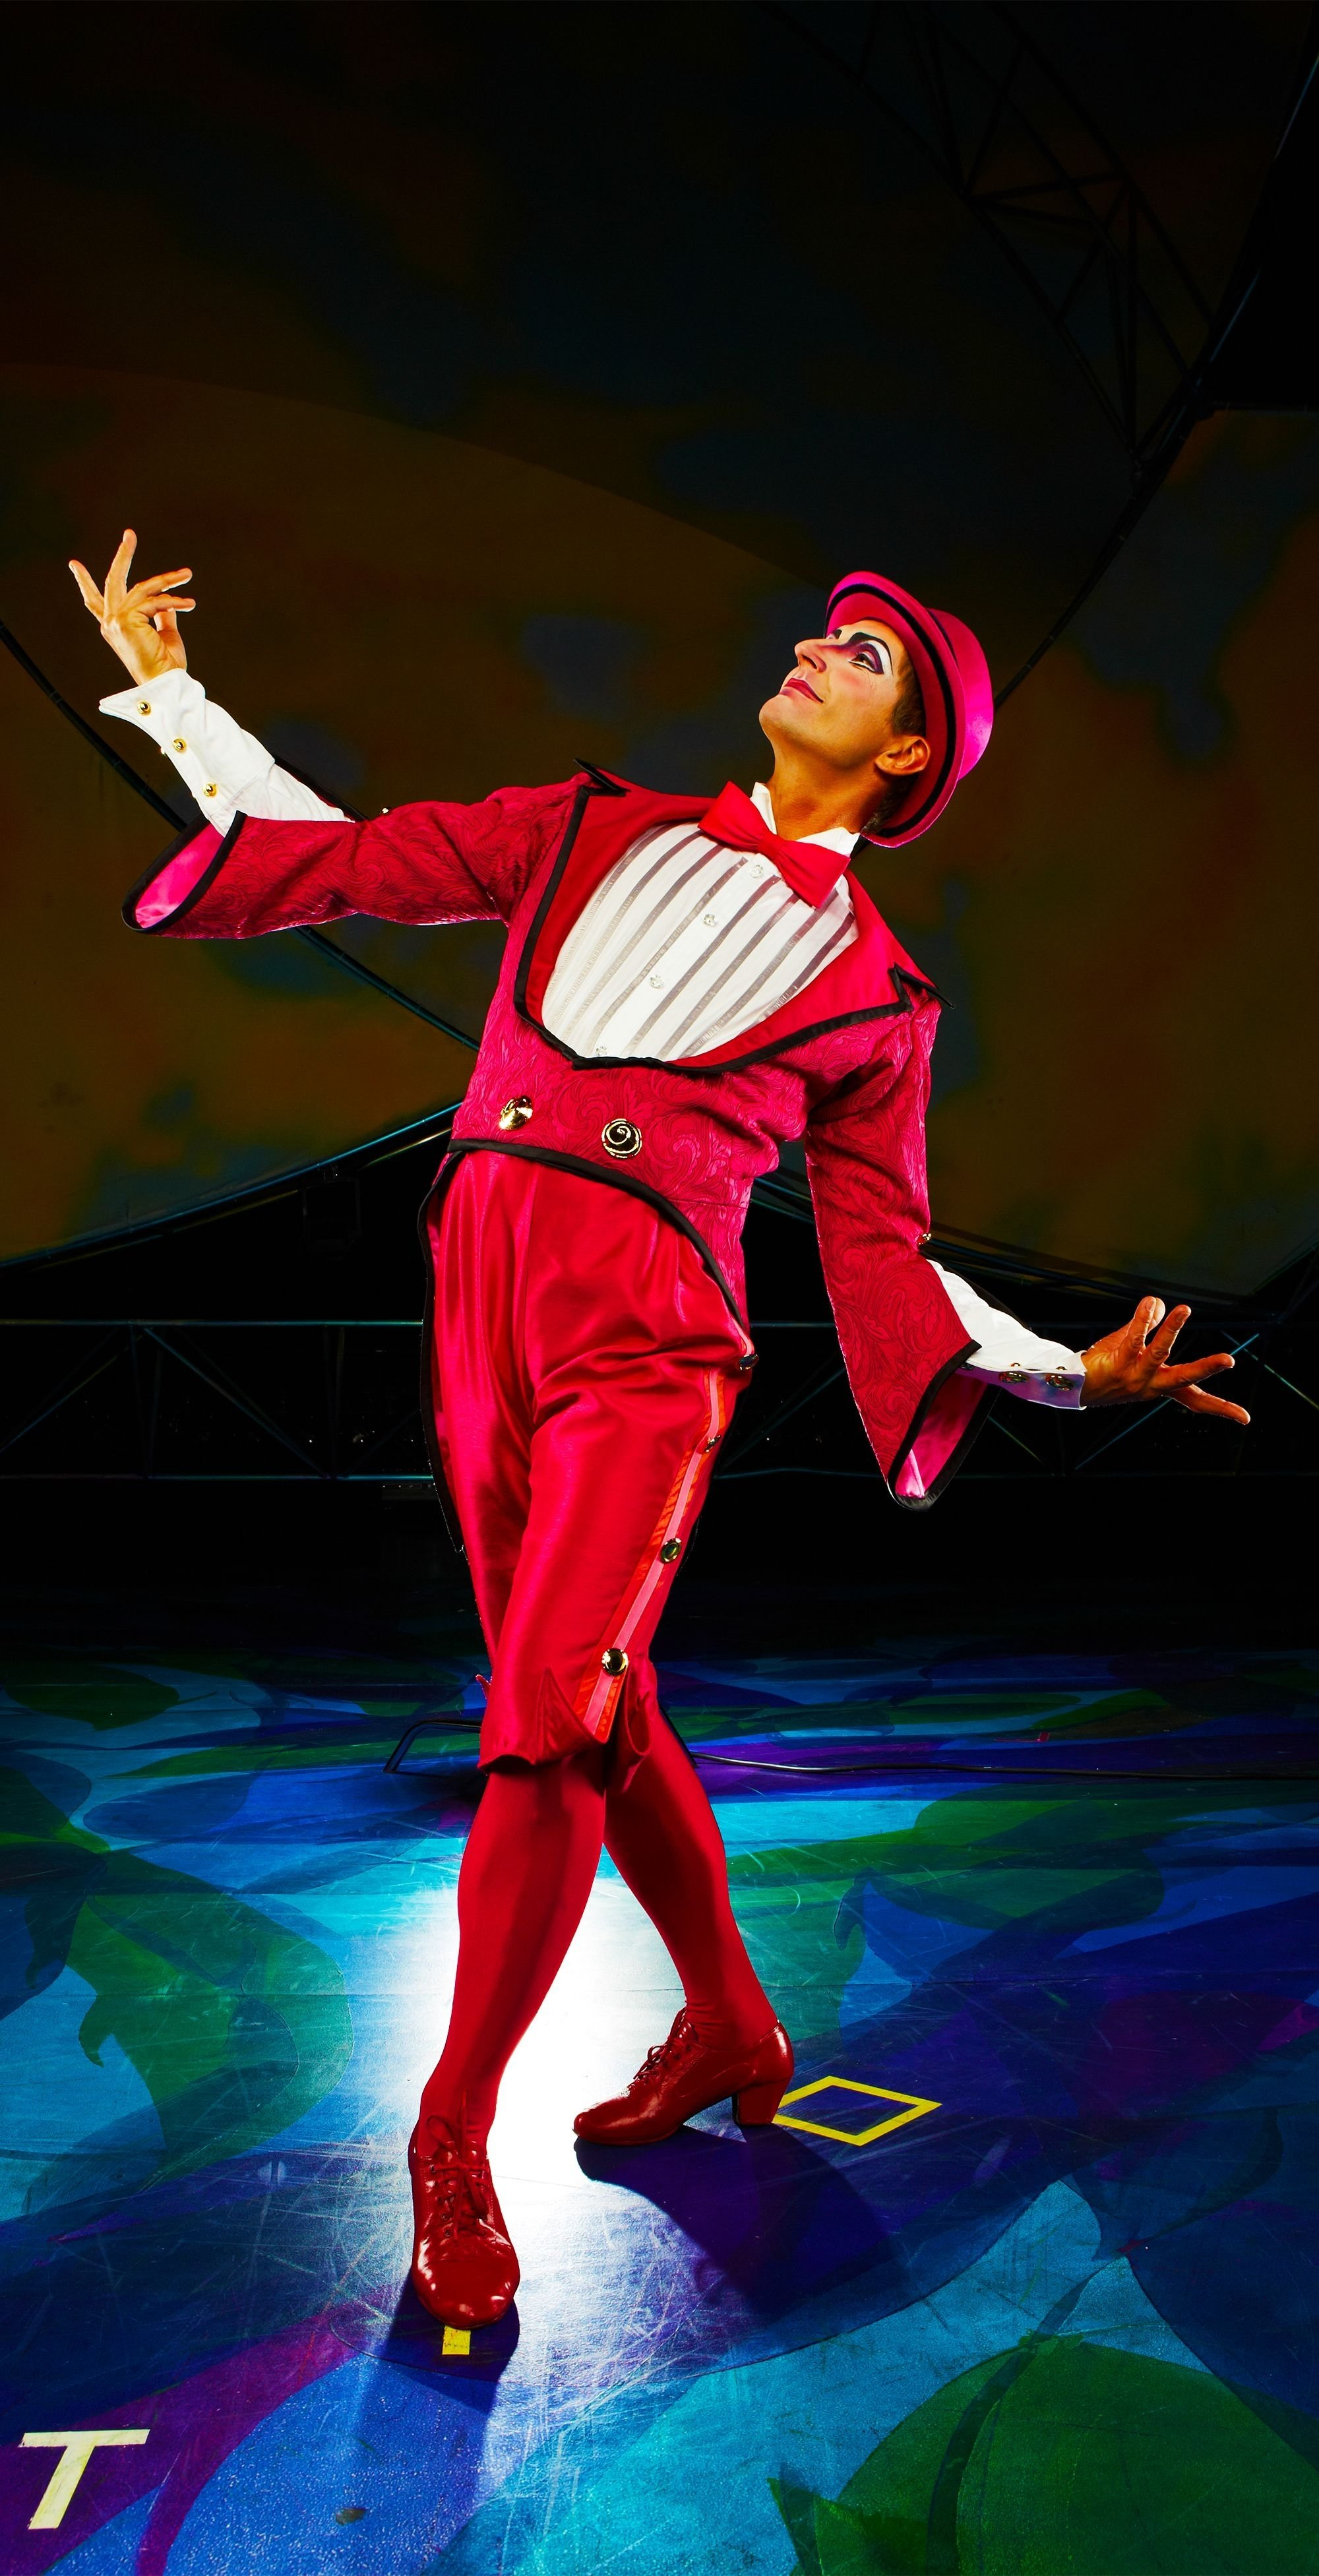 10 Famous Cirque Du Soleil Costume Ideas moha samedi expects you to take him seriously mysterecirque 2021